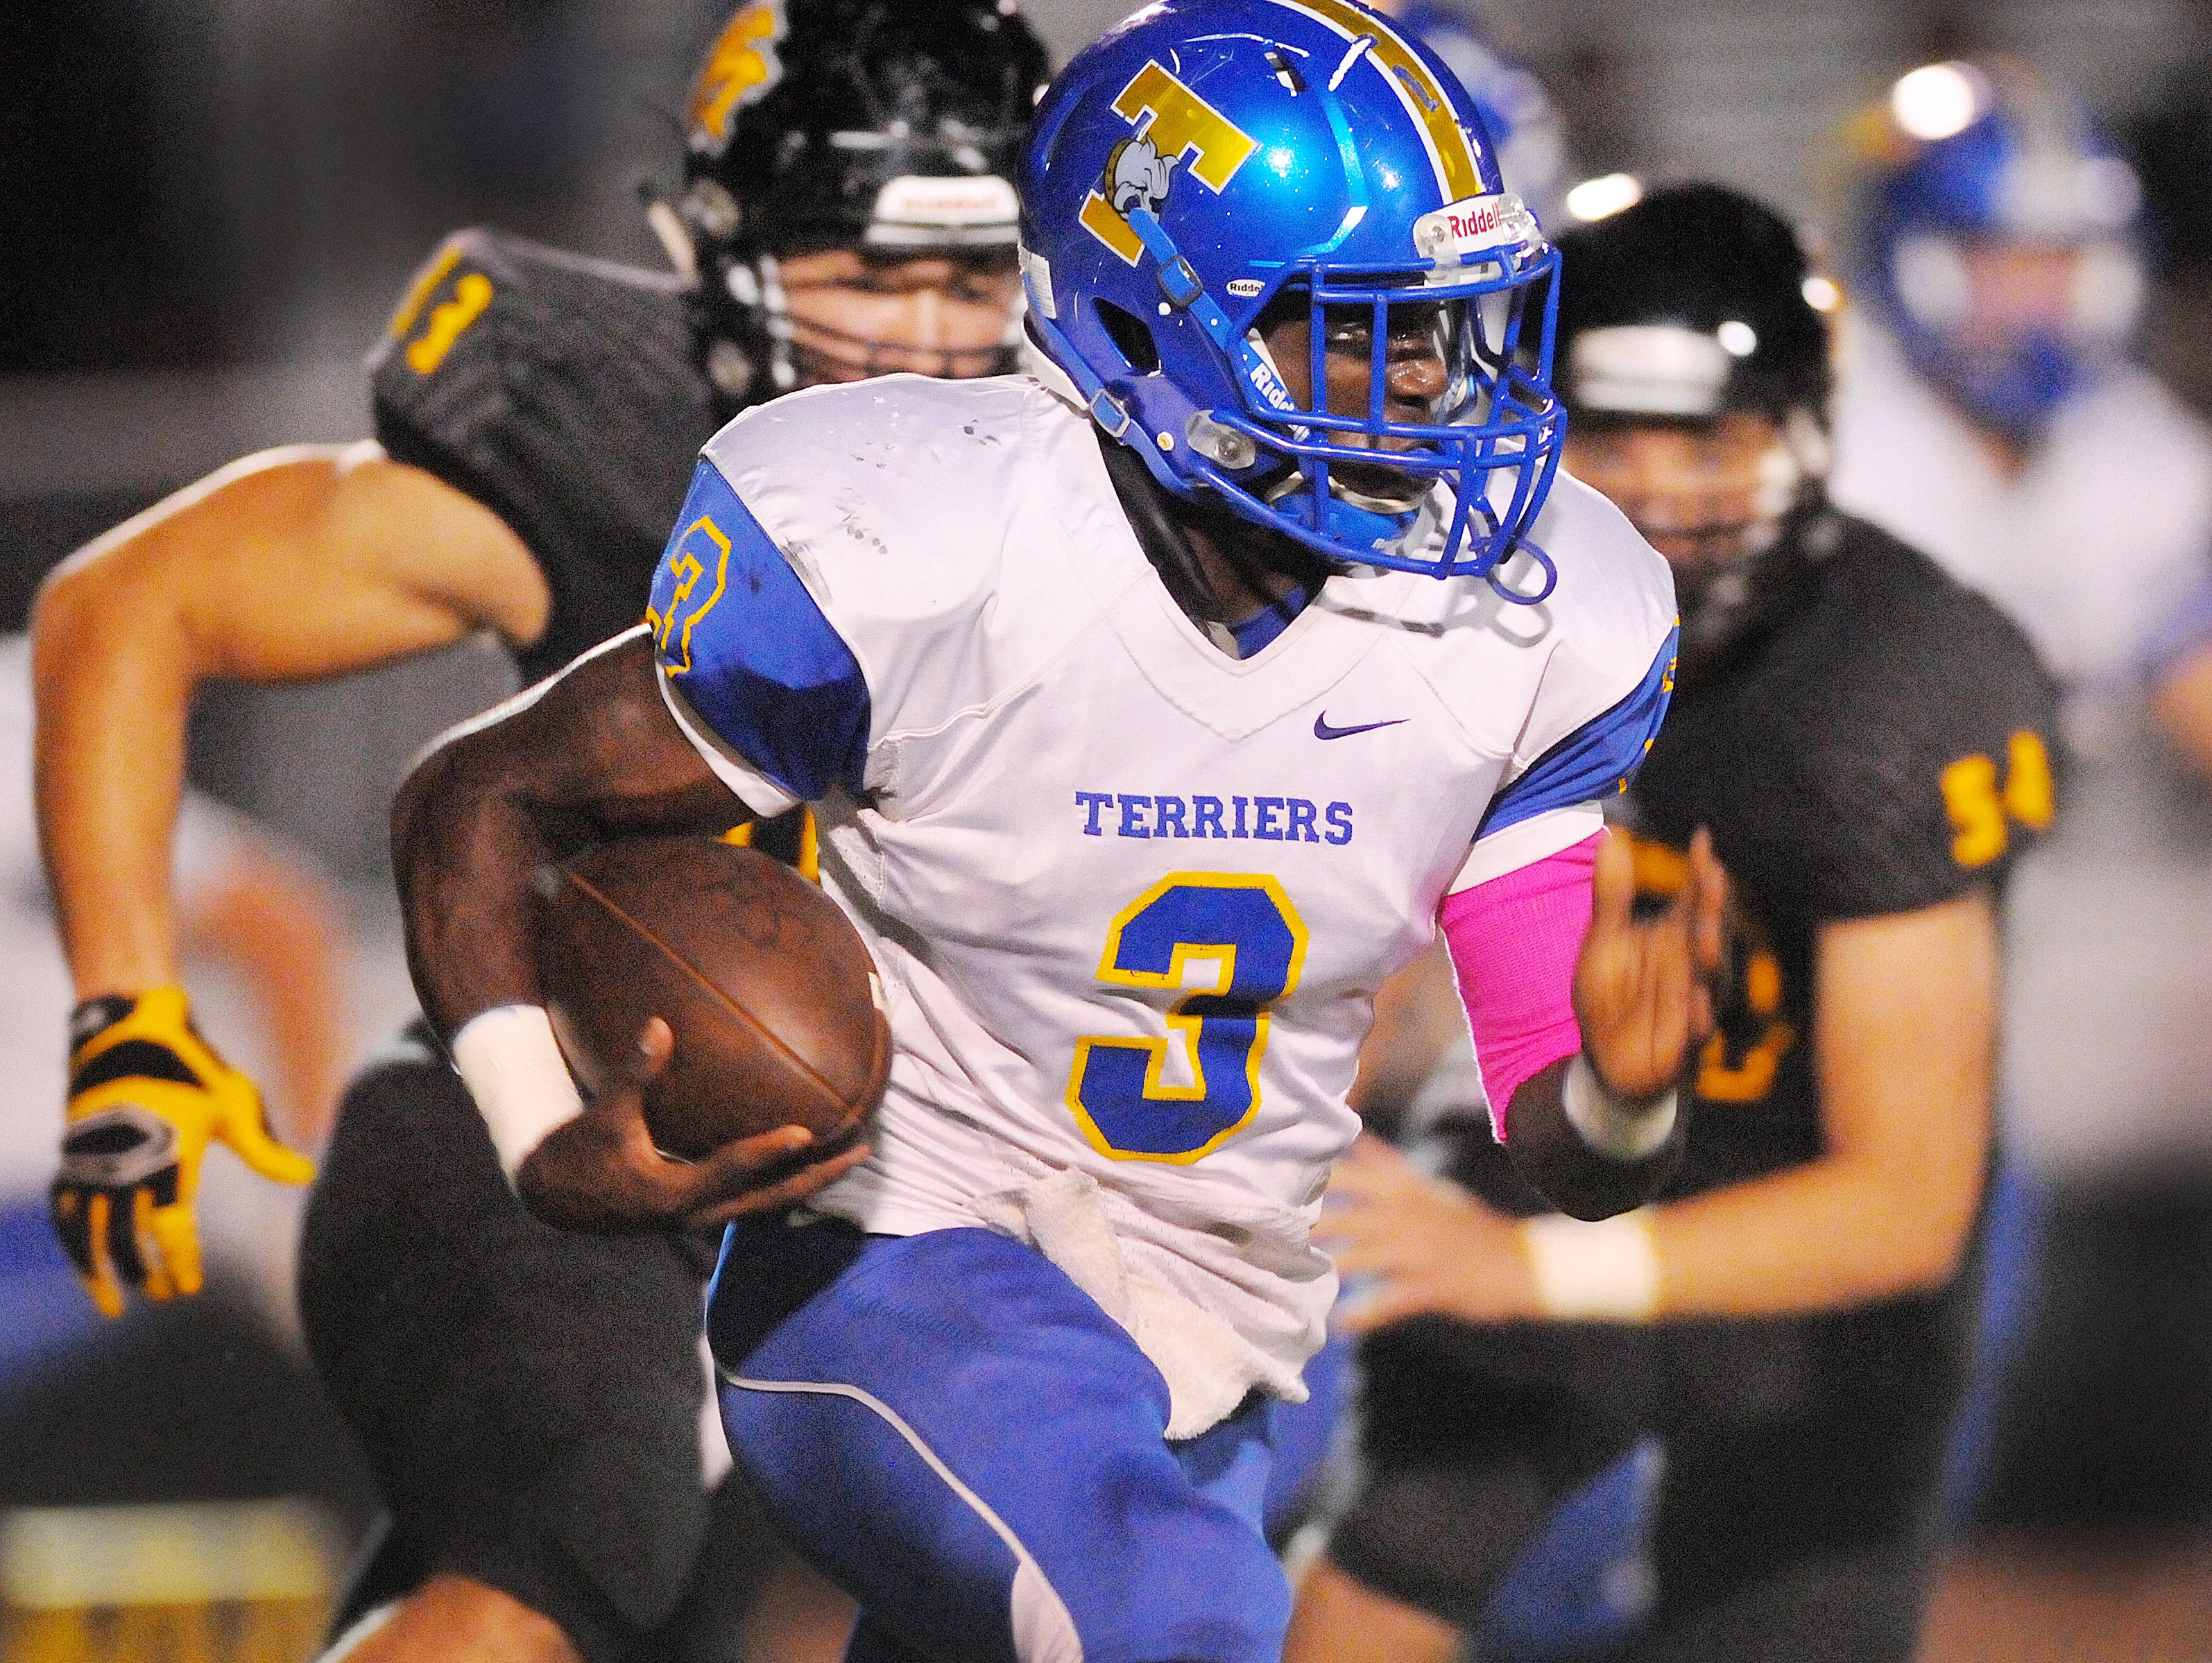 Titusville High's Dontavious Marcus turns the corner around a host of Merritt Island High defenders during a game this season.